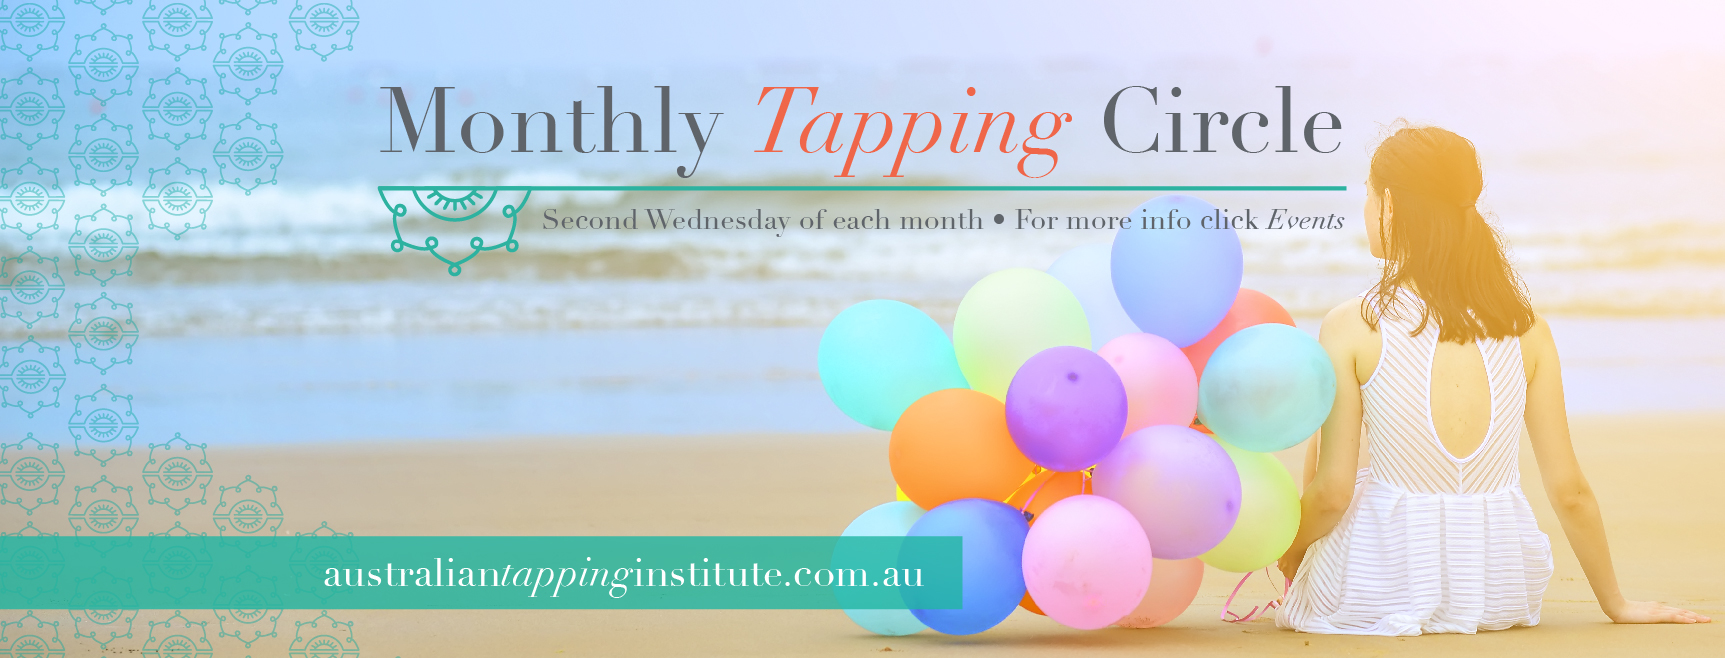 Monthly Tapping Circle